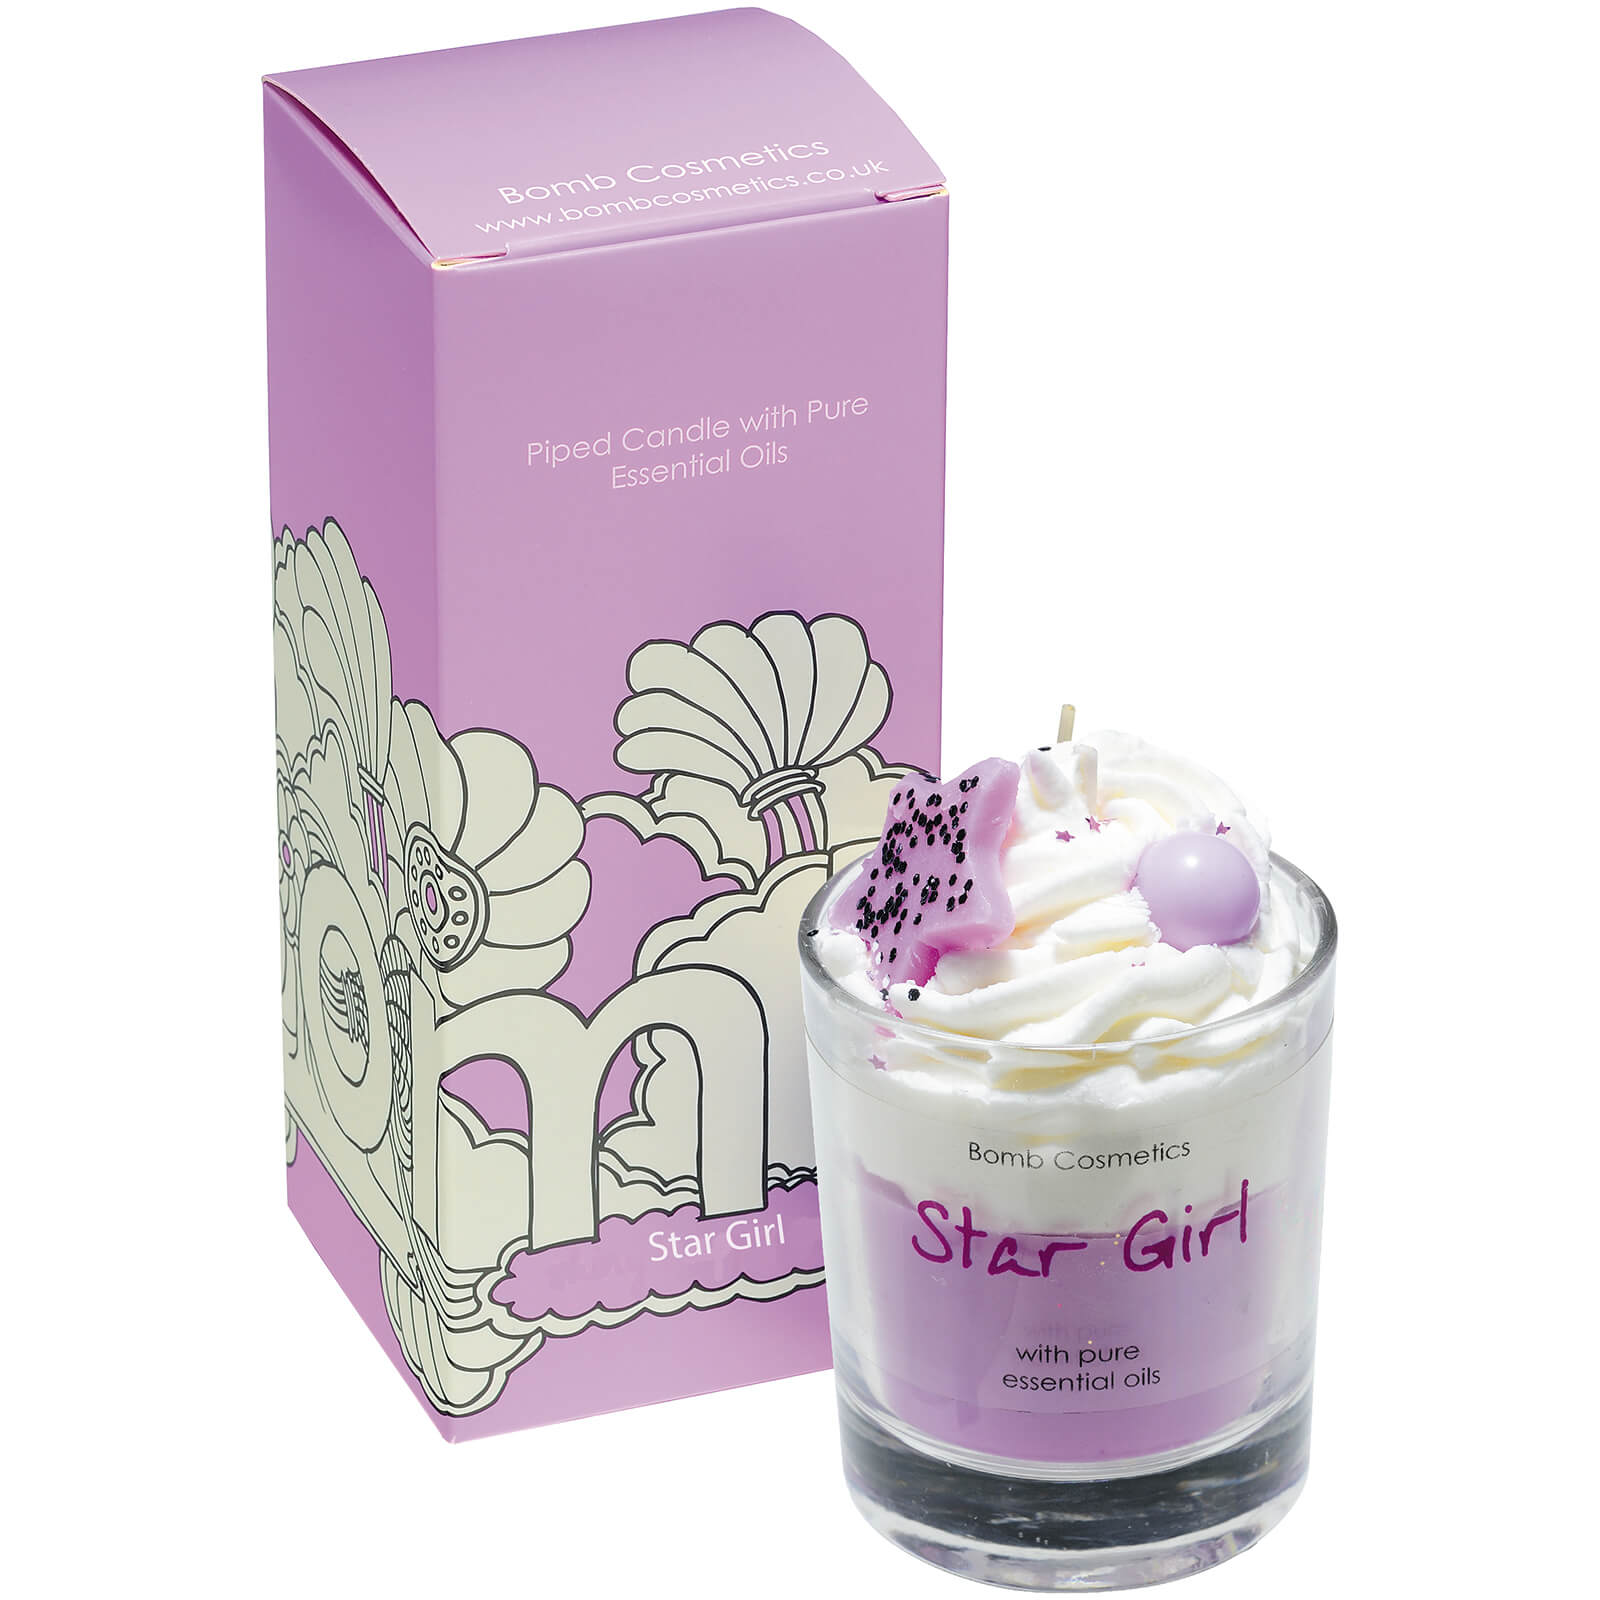 Bomb Cosmetics Star Girl Piped Candle